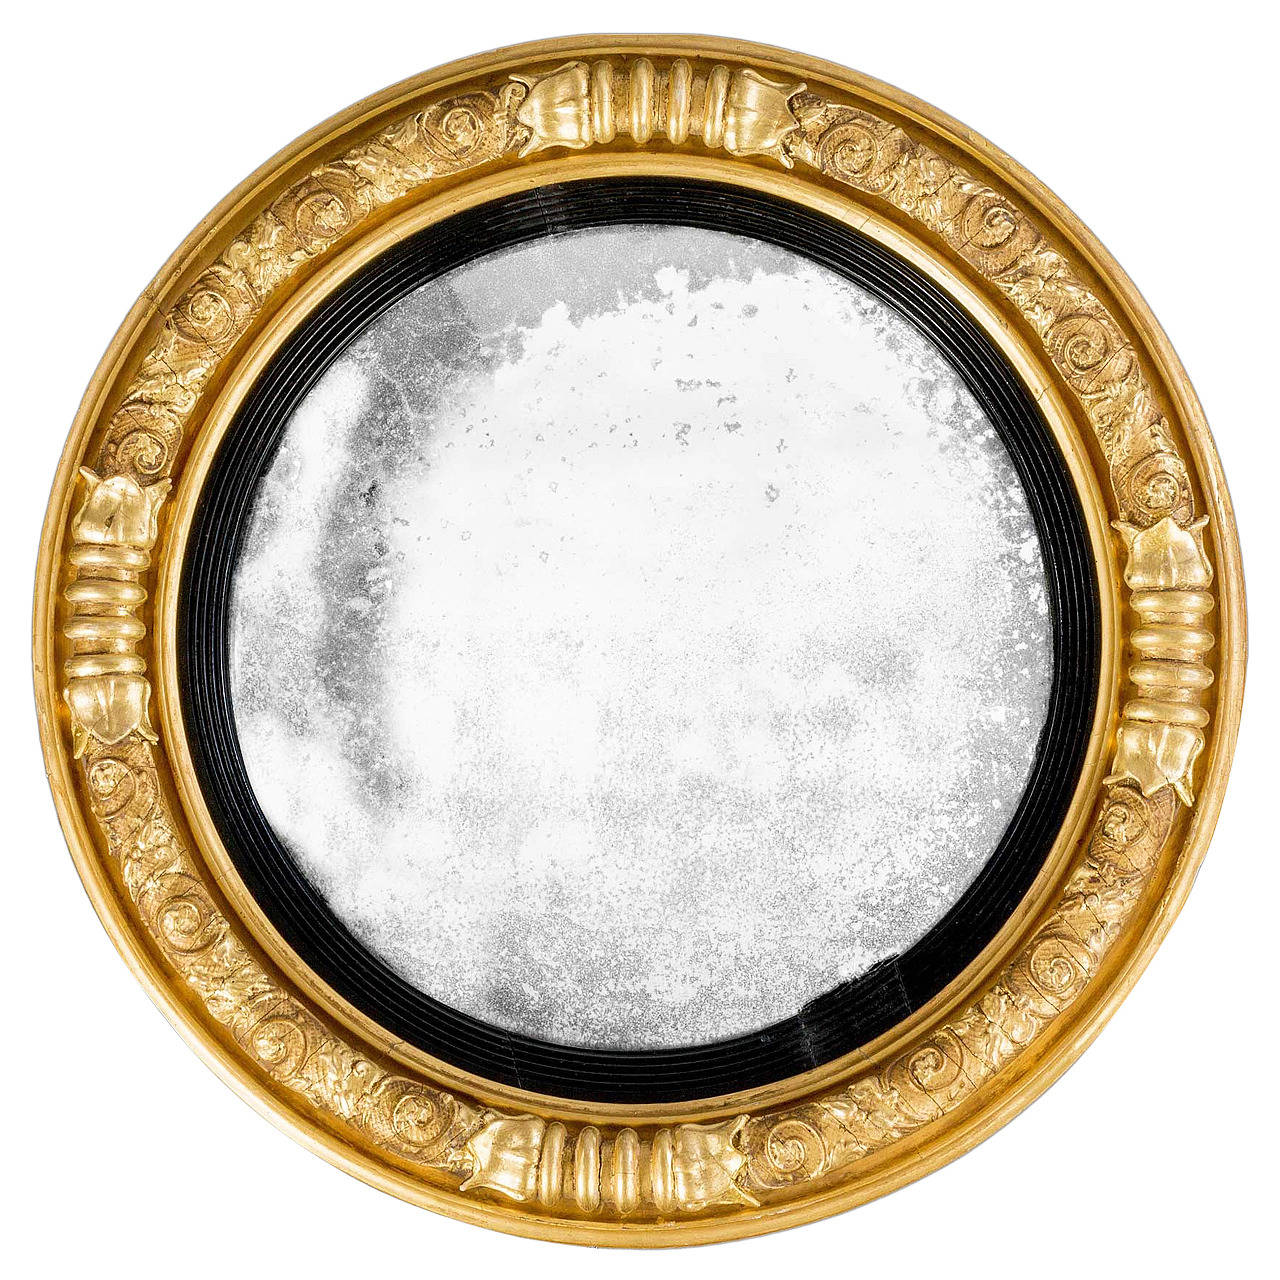 Regency period giltwood convex mirror for sale at 1stdibs for Convex mirror